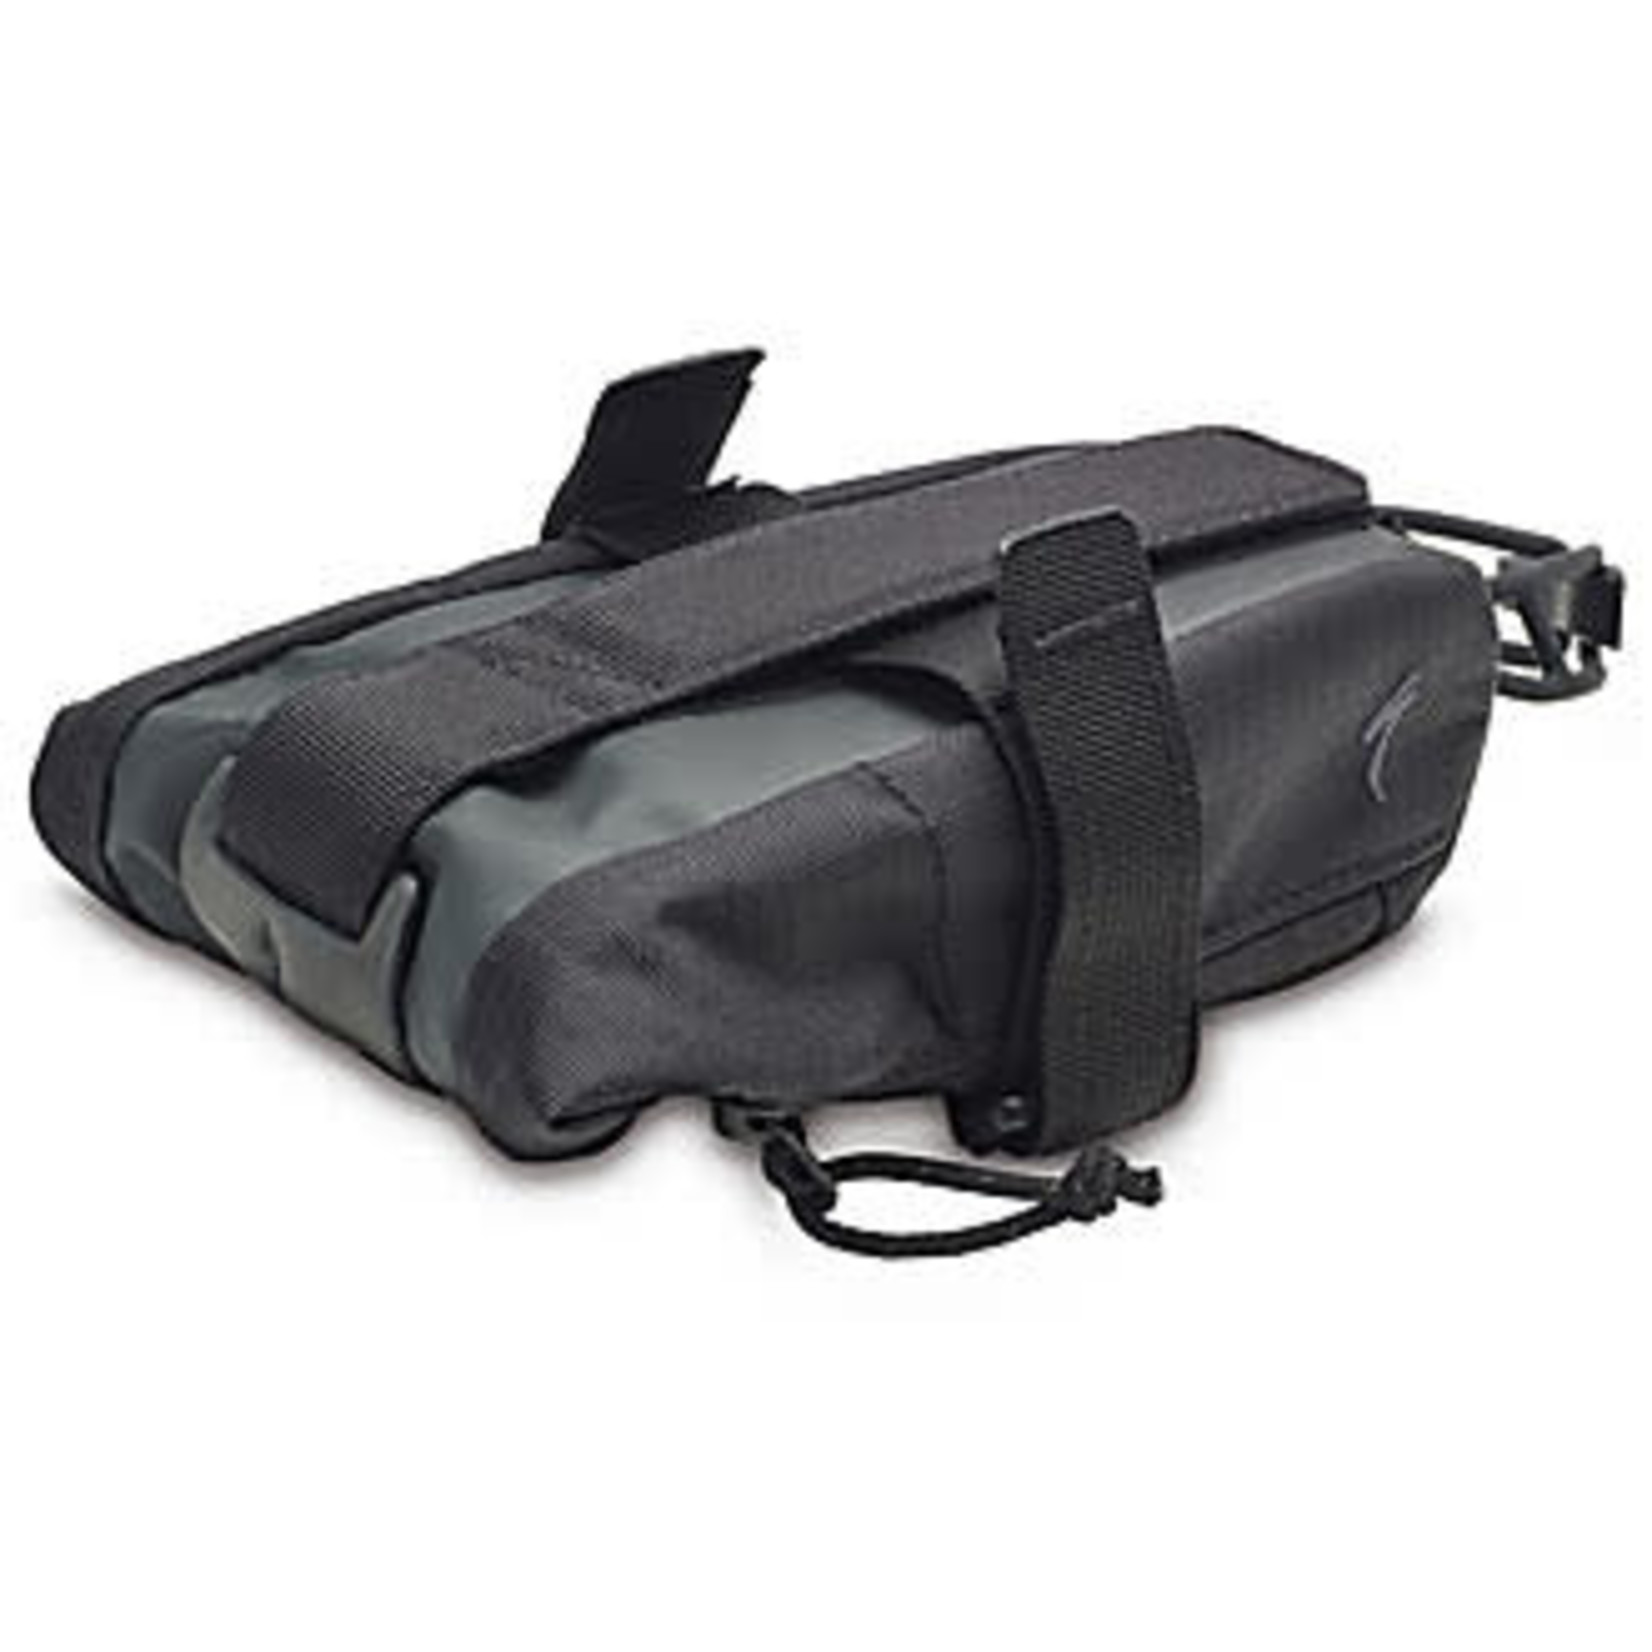 Specialized Specialized Seat Pack Large Black